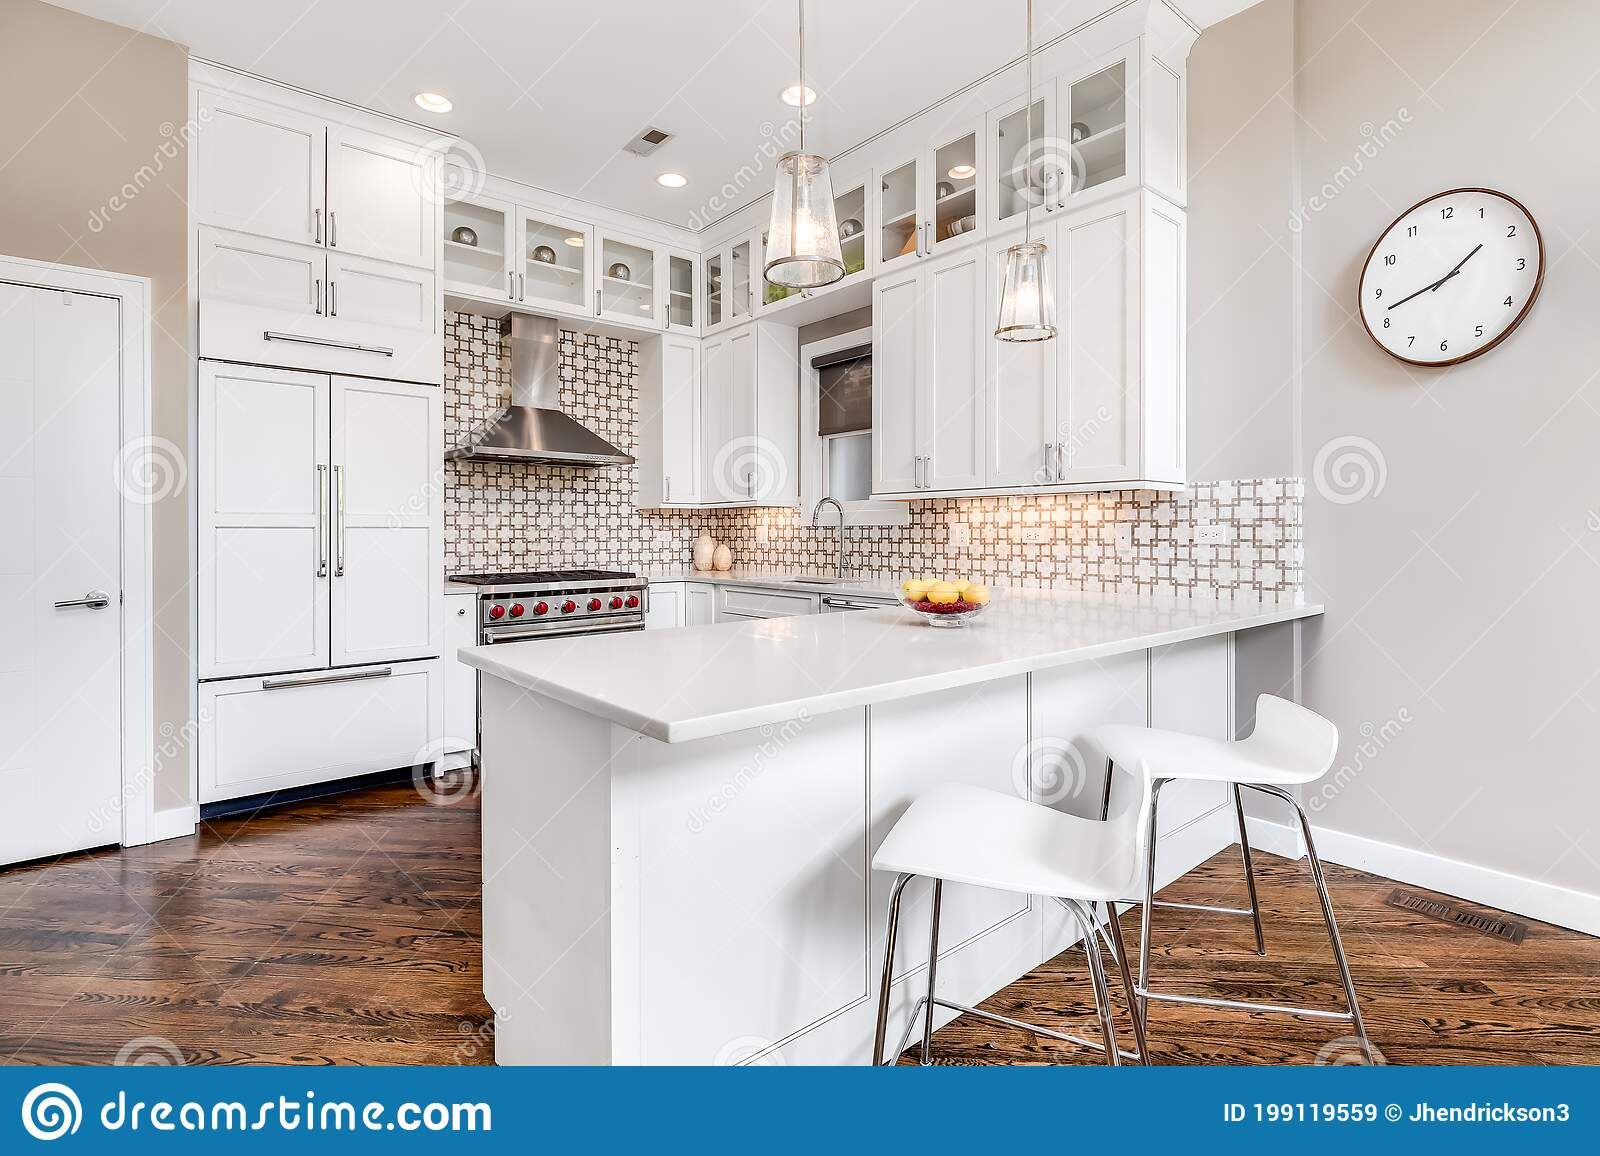 A Luxury White Kitchen With A Unique Tile Backsplash Editorial Stock Image Image Of Chair Elegance 199119559